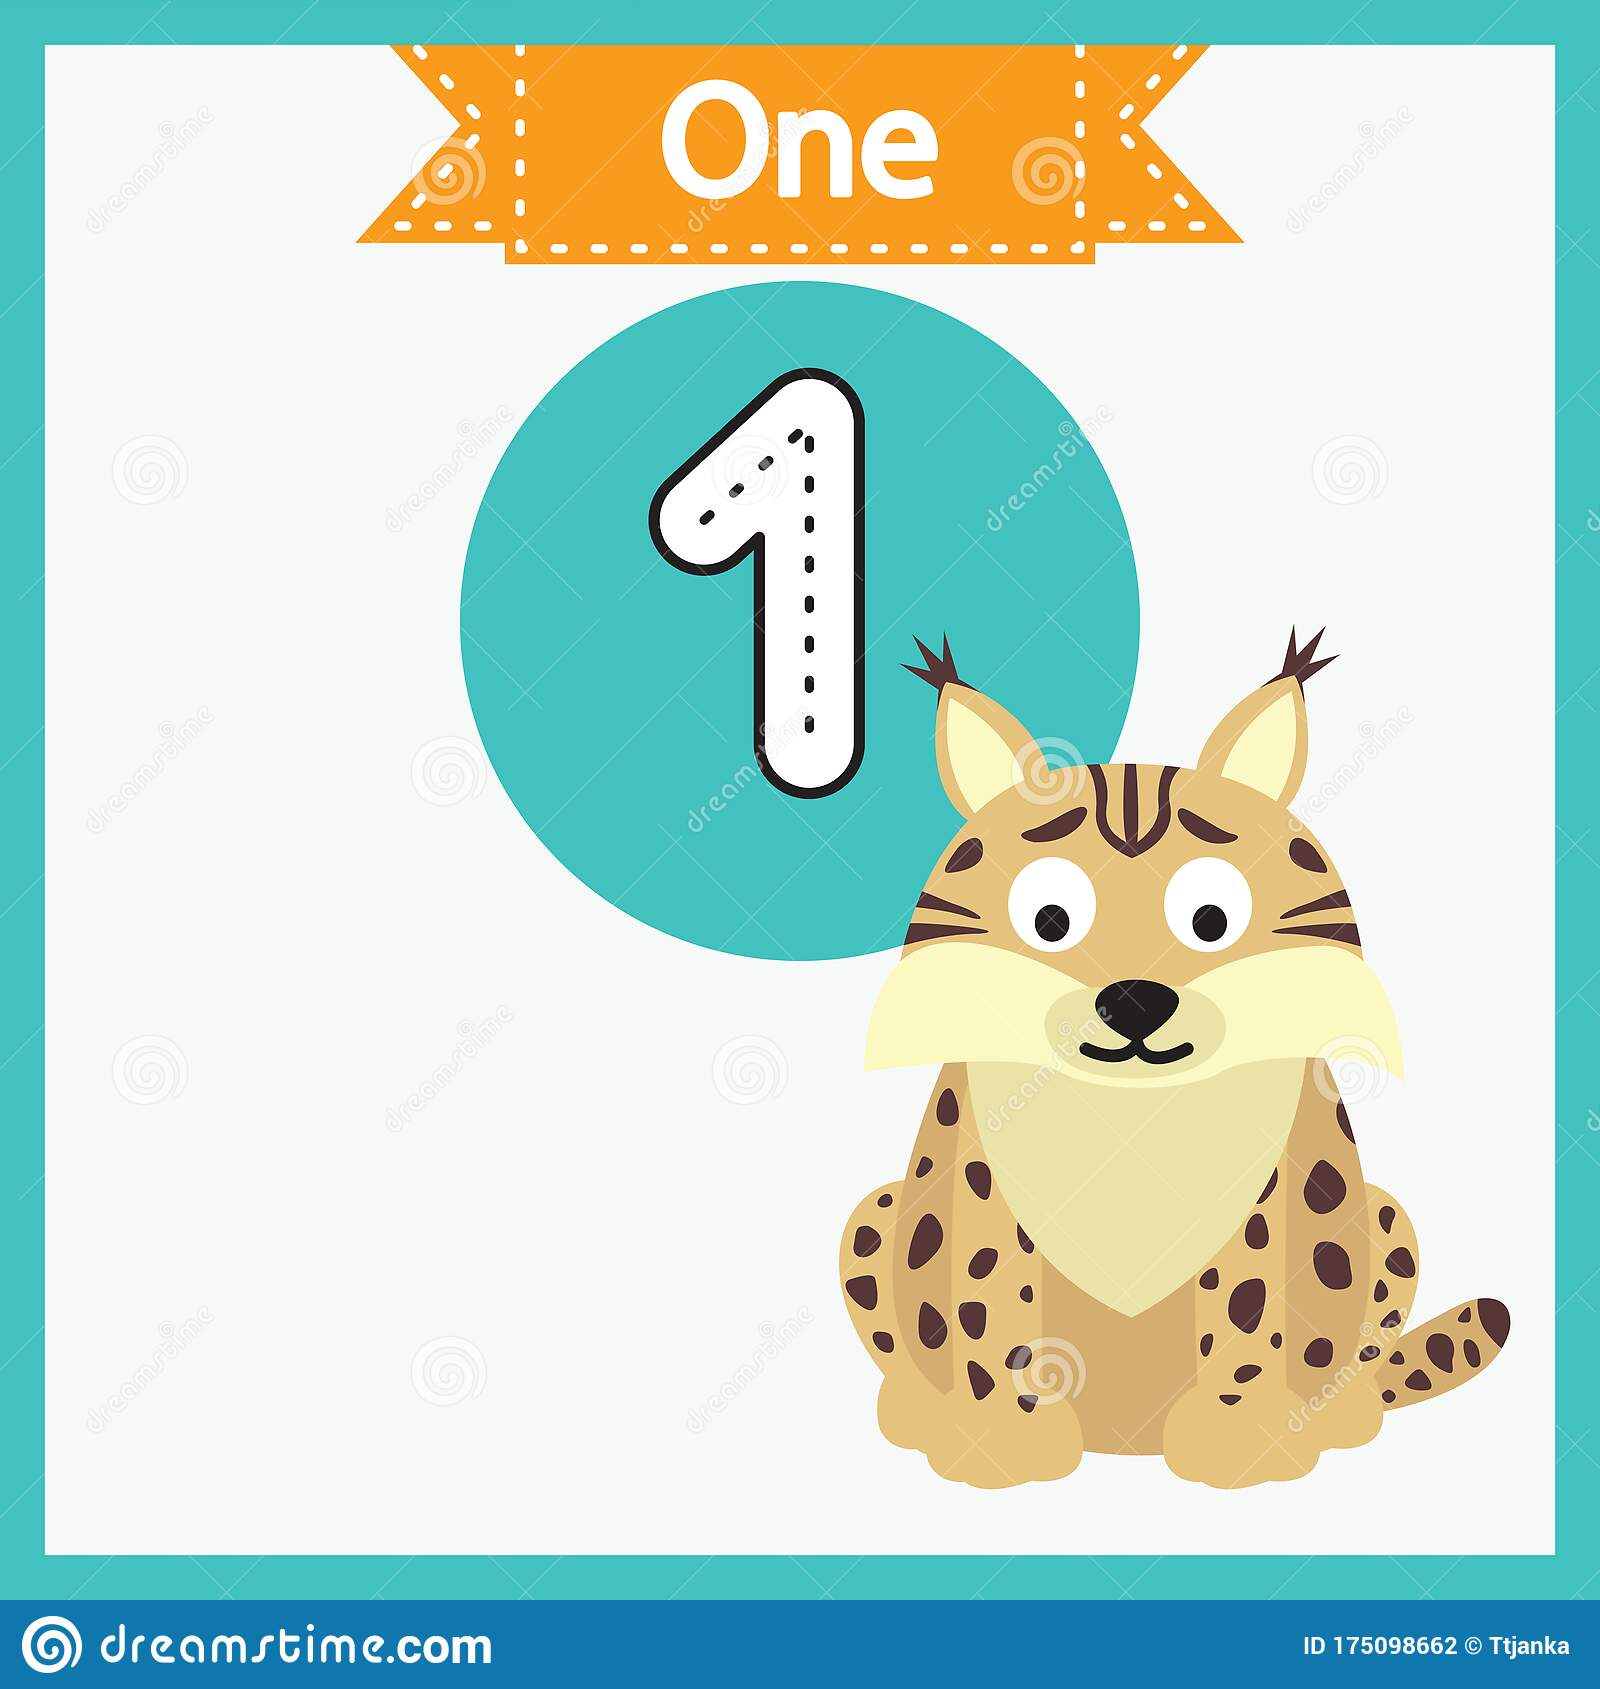 Baby Learning Cards With Animals Learning To Count And To